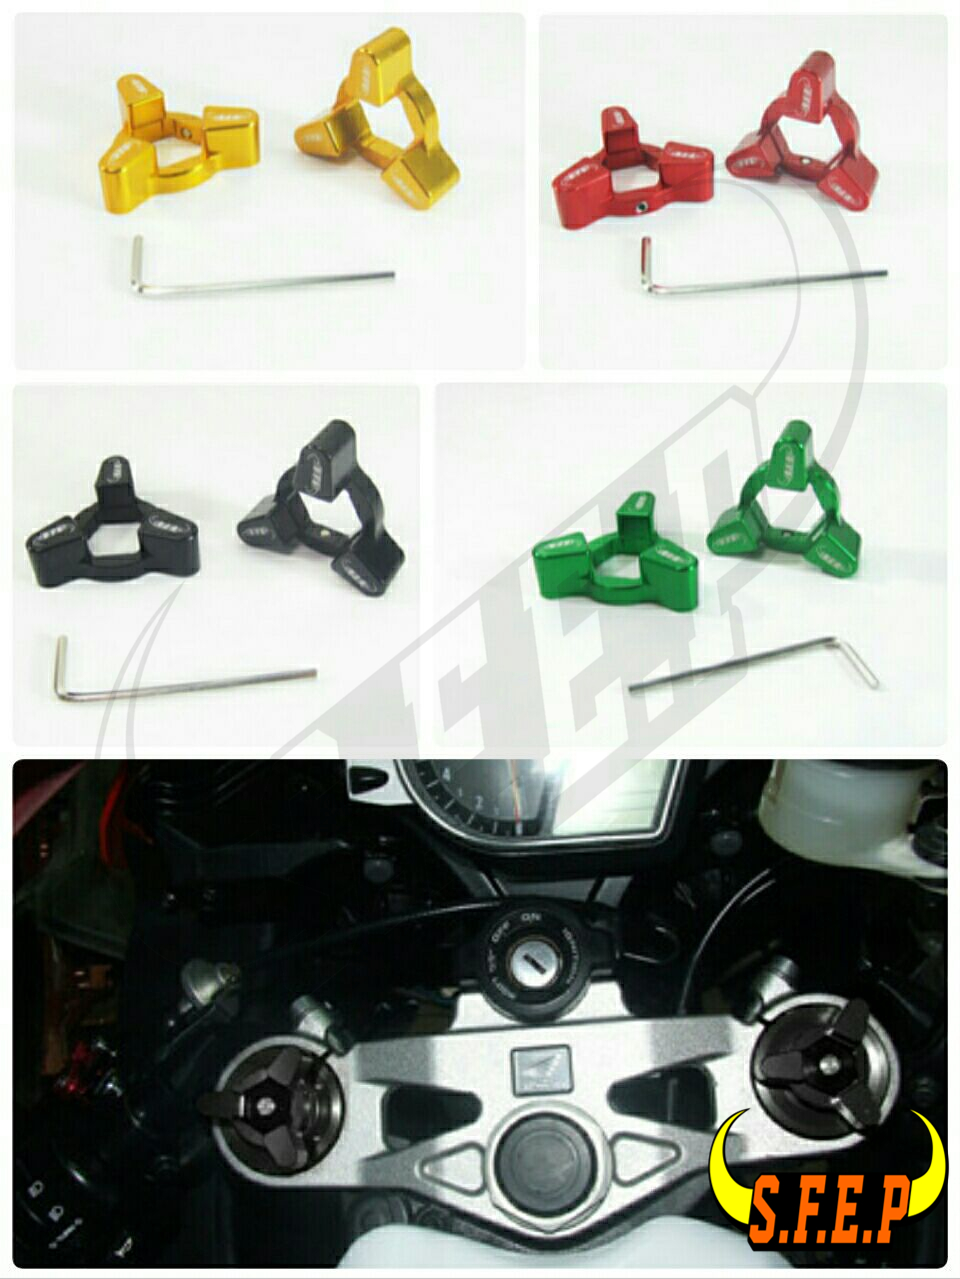 Motorcycle CNC Fork Preload Adjusters For Kawasaki GTR1400 / Concours 14 07-10/ ZX7R/RR 91-03